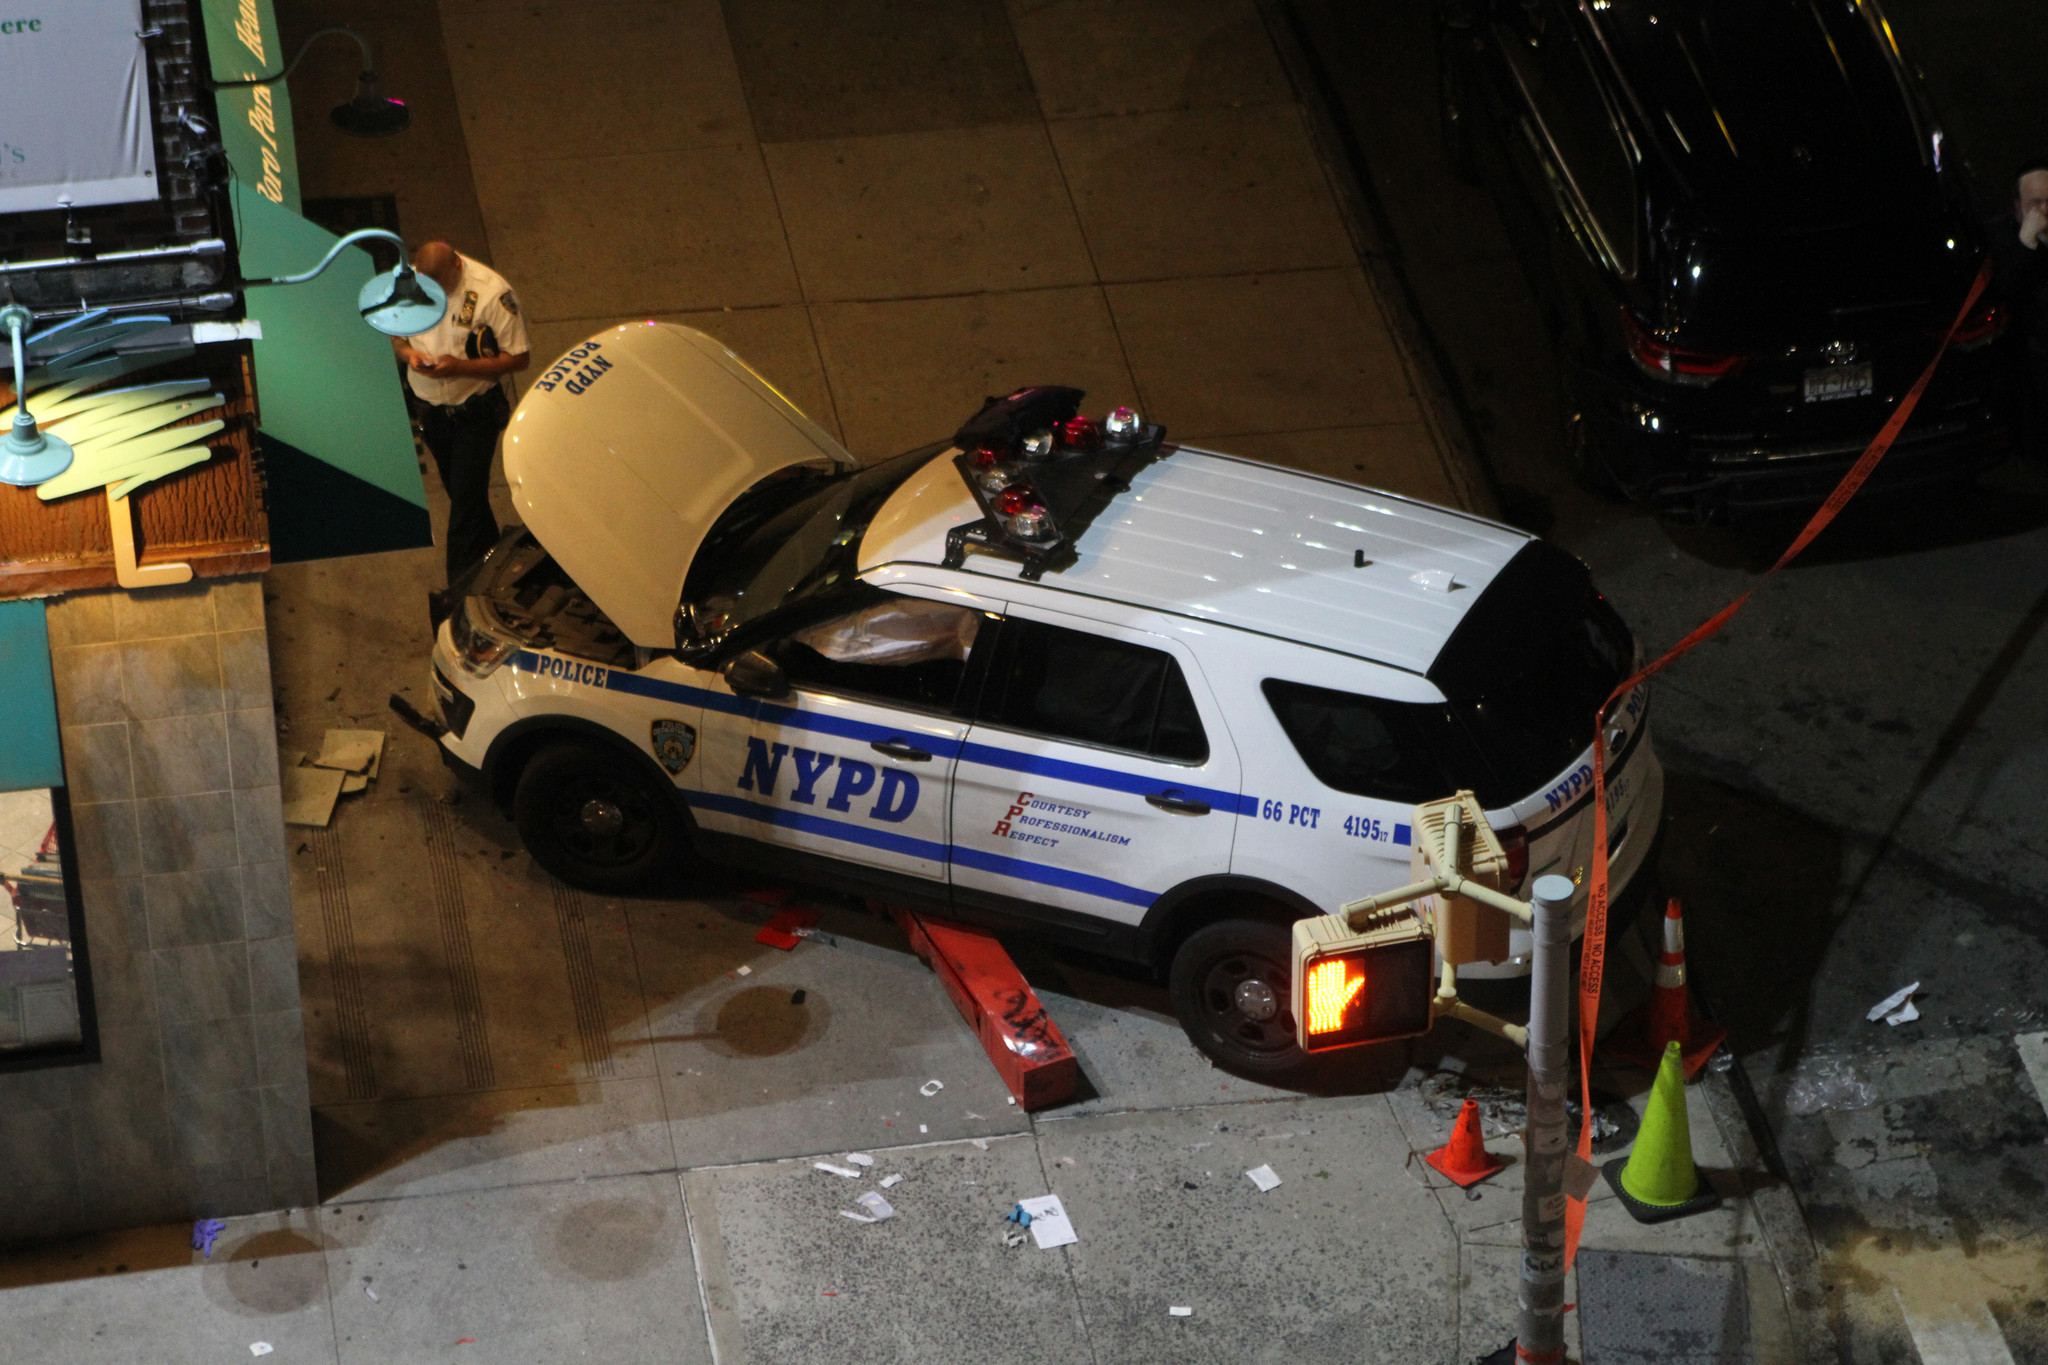 Five hurt when NYPD car slams storefront in Brooklyn crash